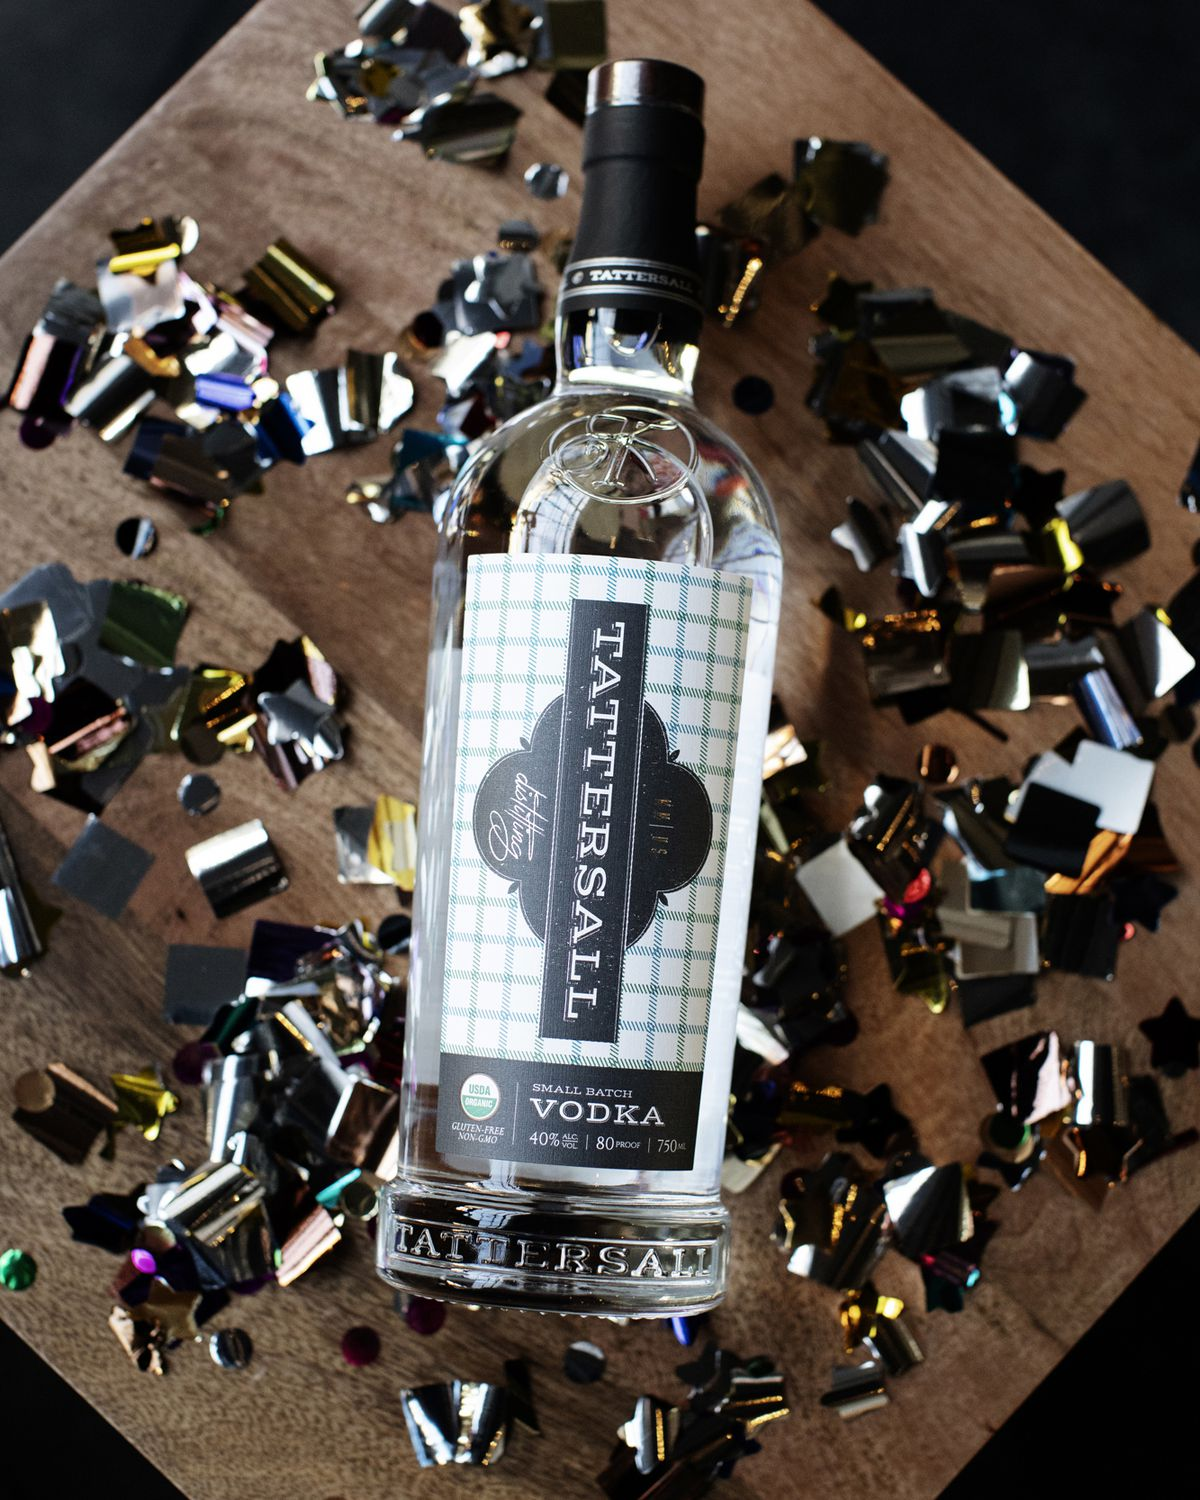 A bottle of Tattersall's vodka, on a table, surrounded by glitter confetti